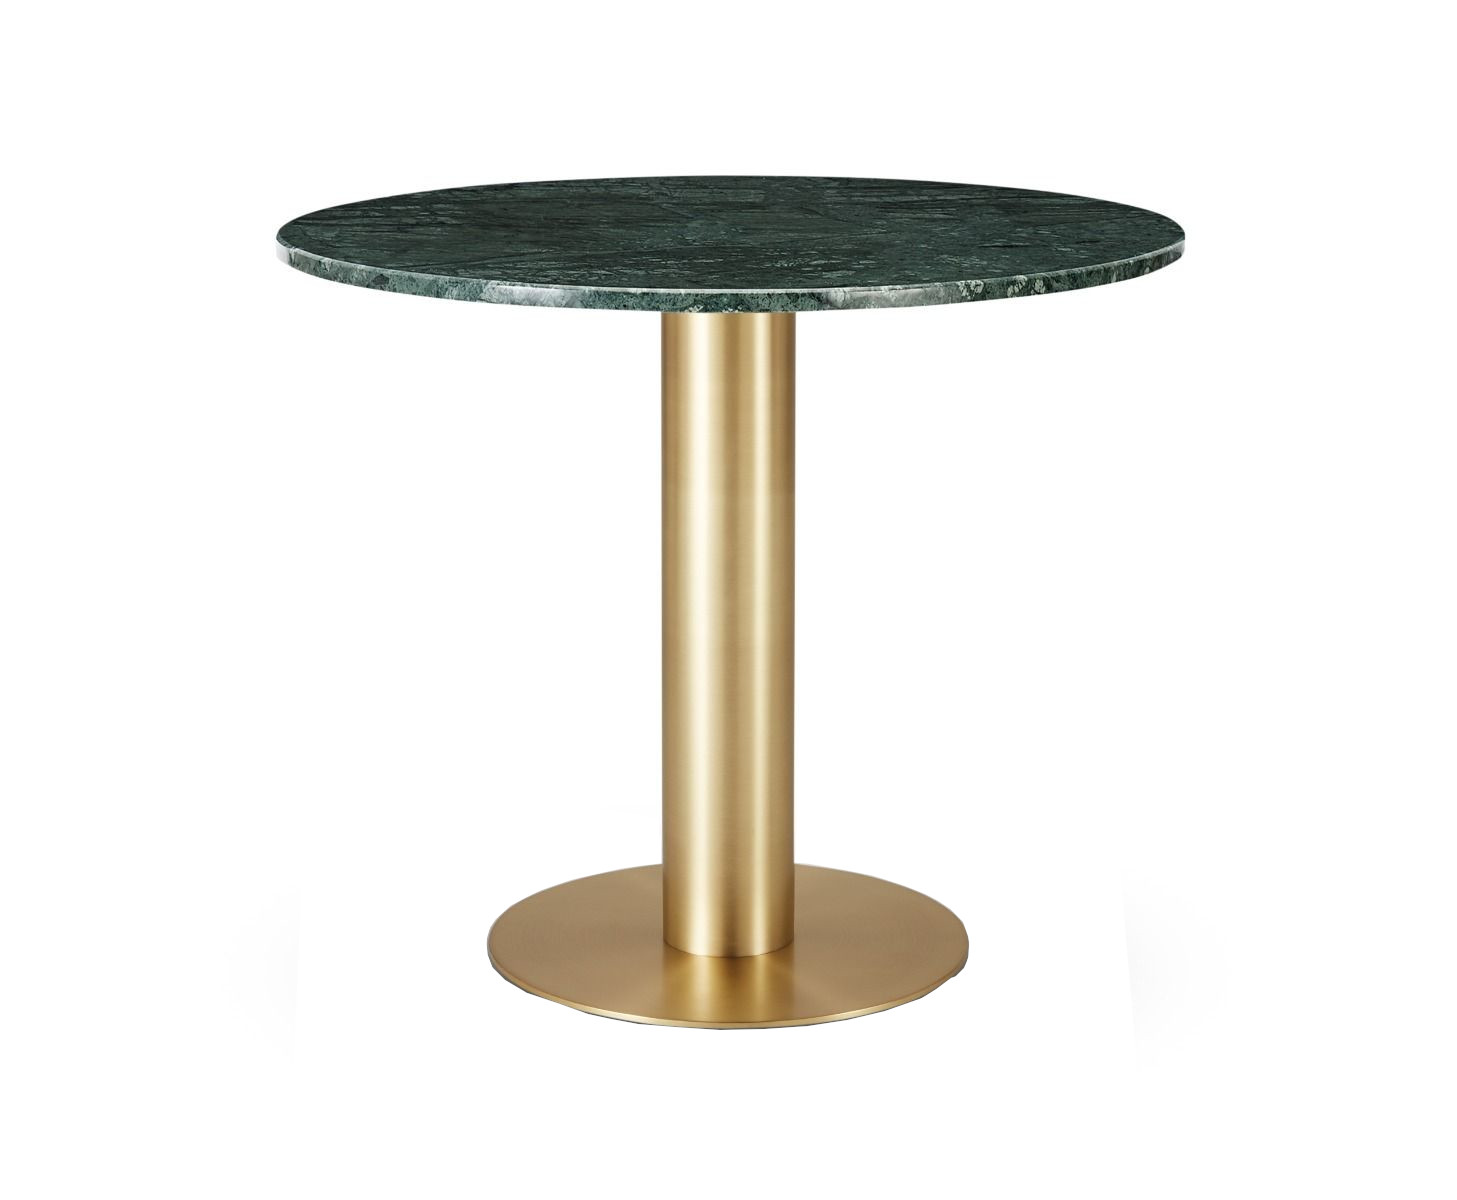 Tube Dining Table Brass Green Marble Top 900mm